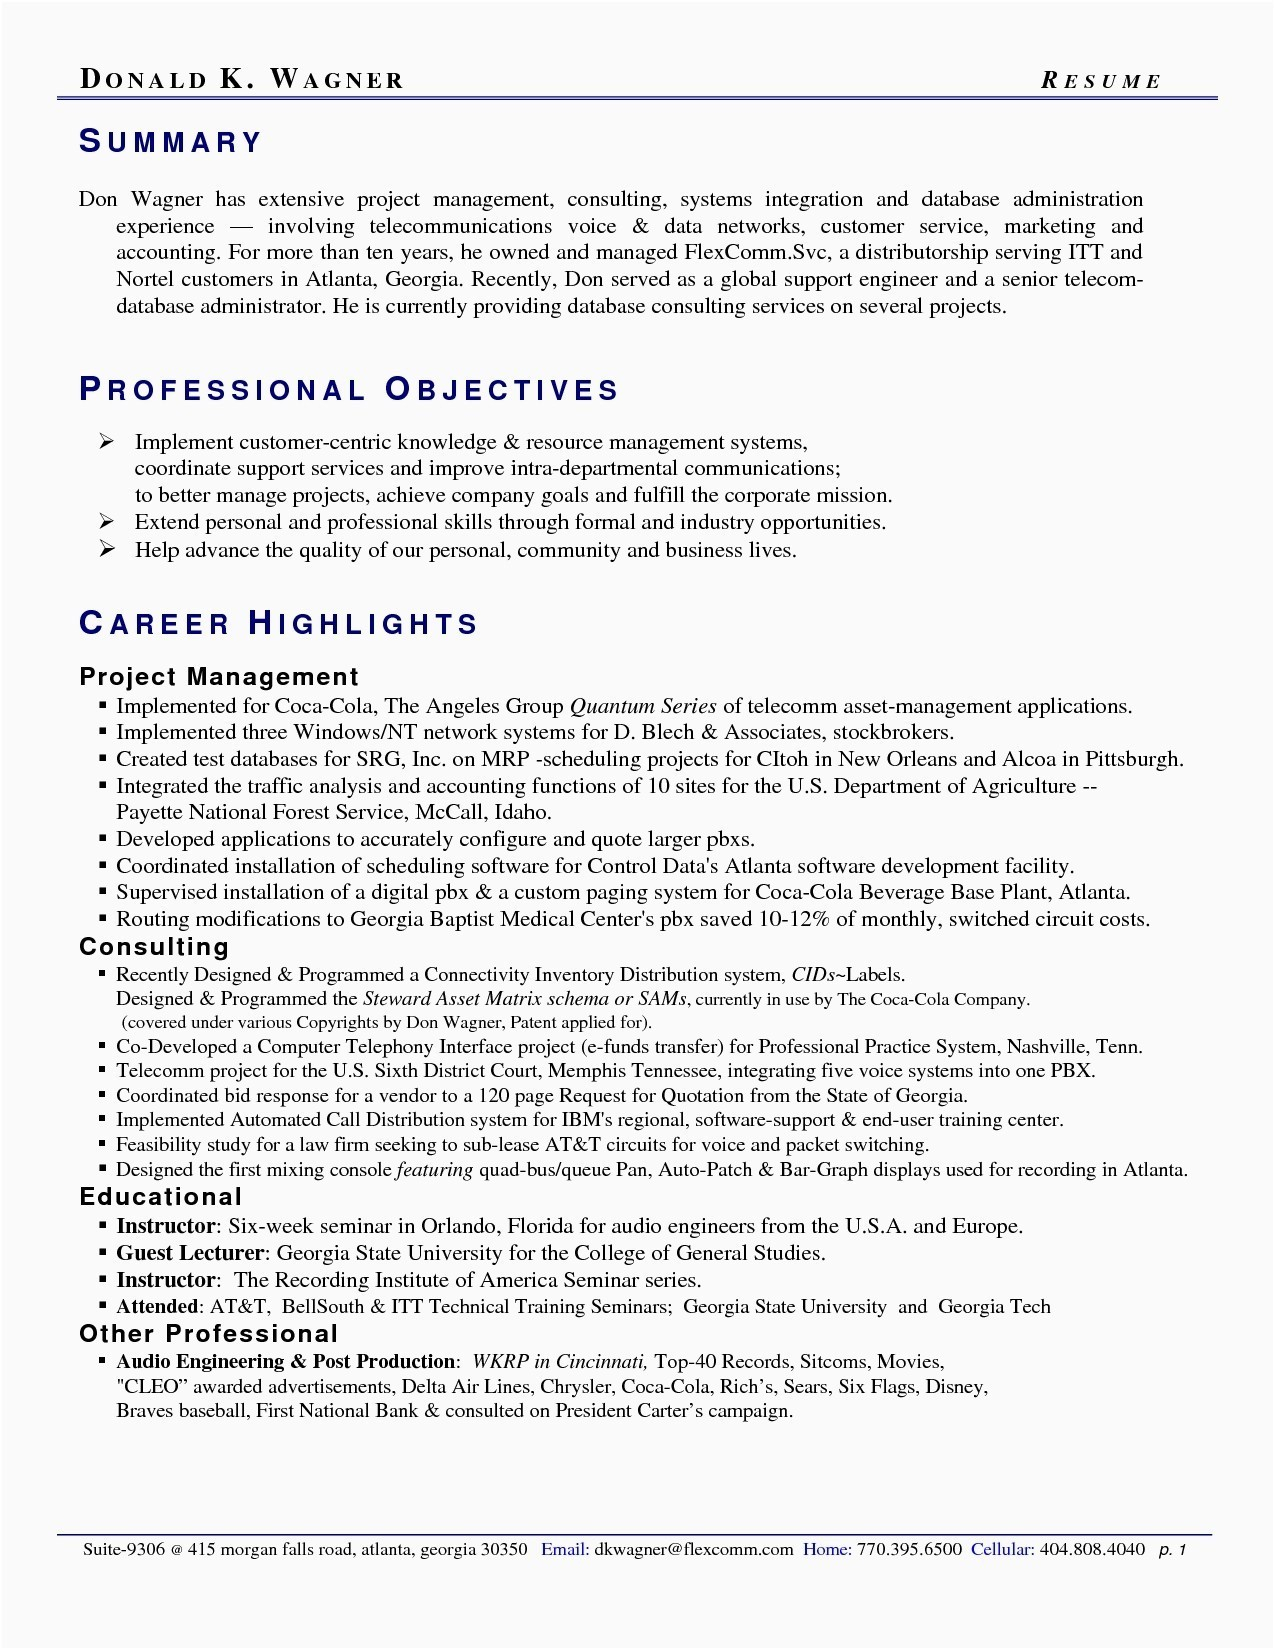 Ats Friendly Resume Templates - Resume for Corporate Banking which is Monly Used Resume Insight